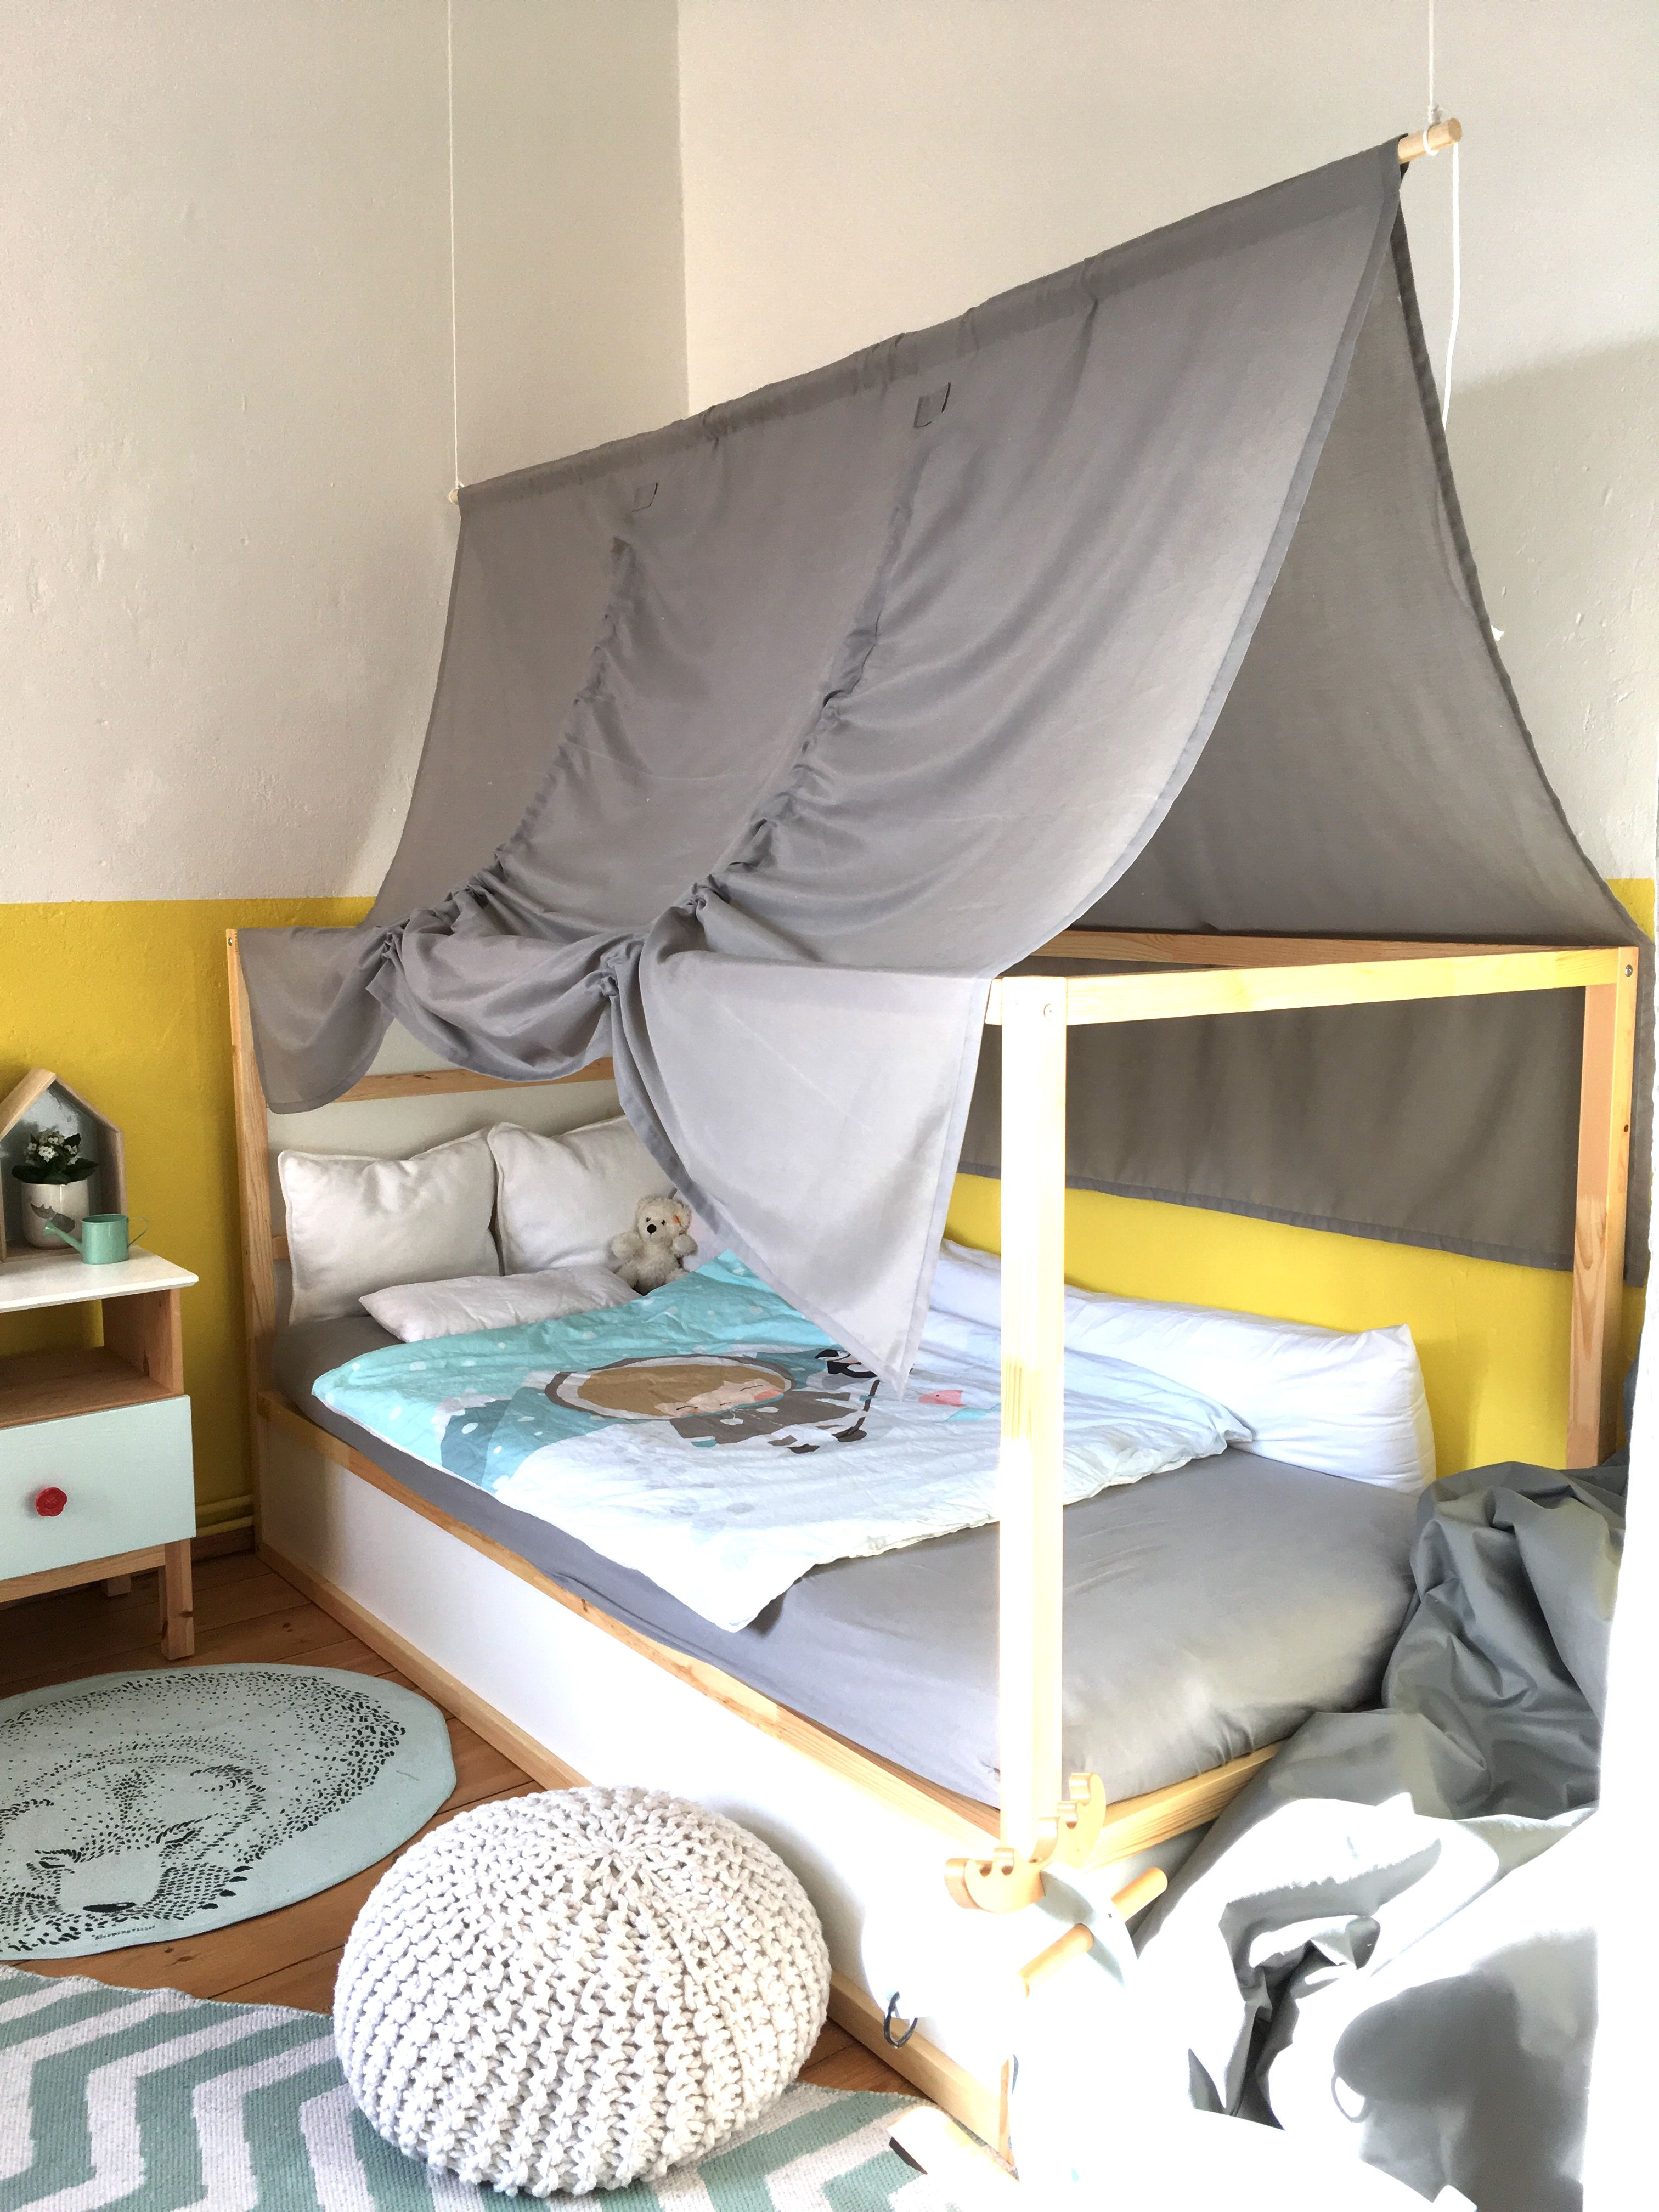 Ikea Kura Kinderbett Mit Diy Betthimmel 3 Spare Room In 2019